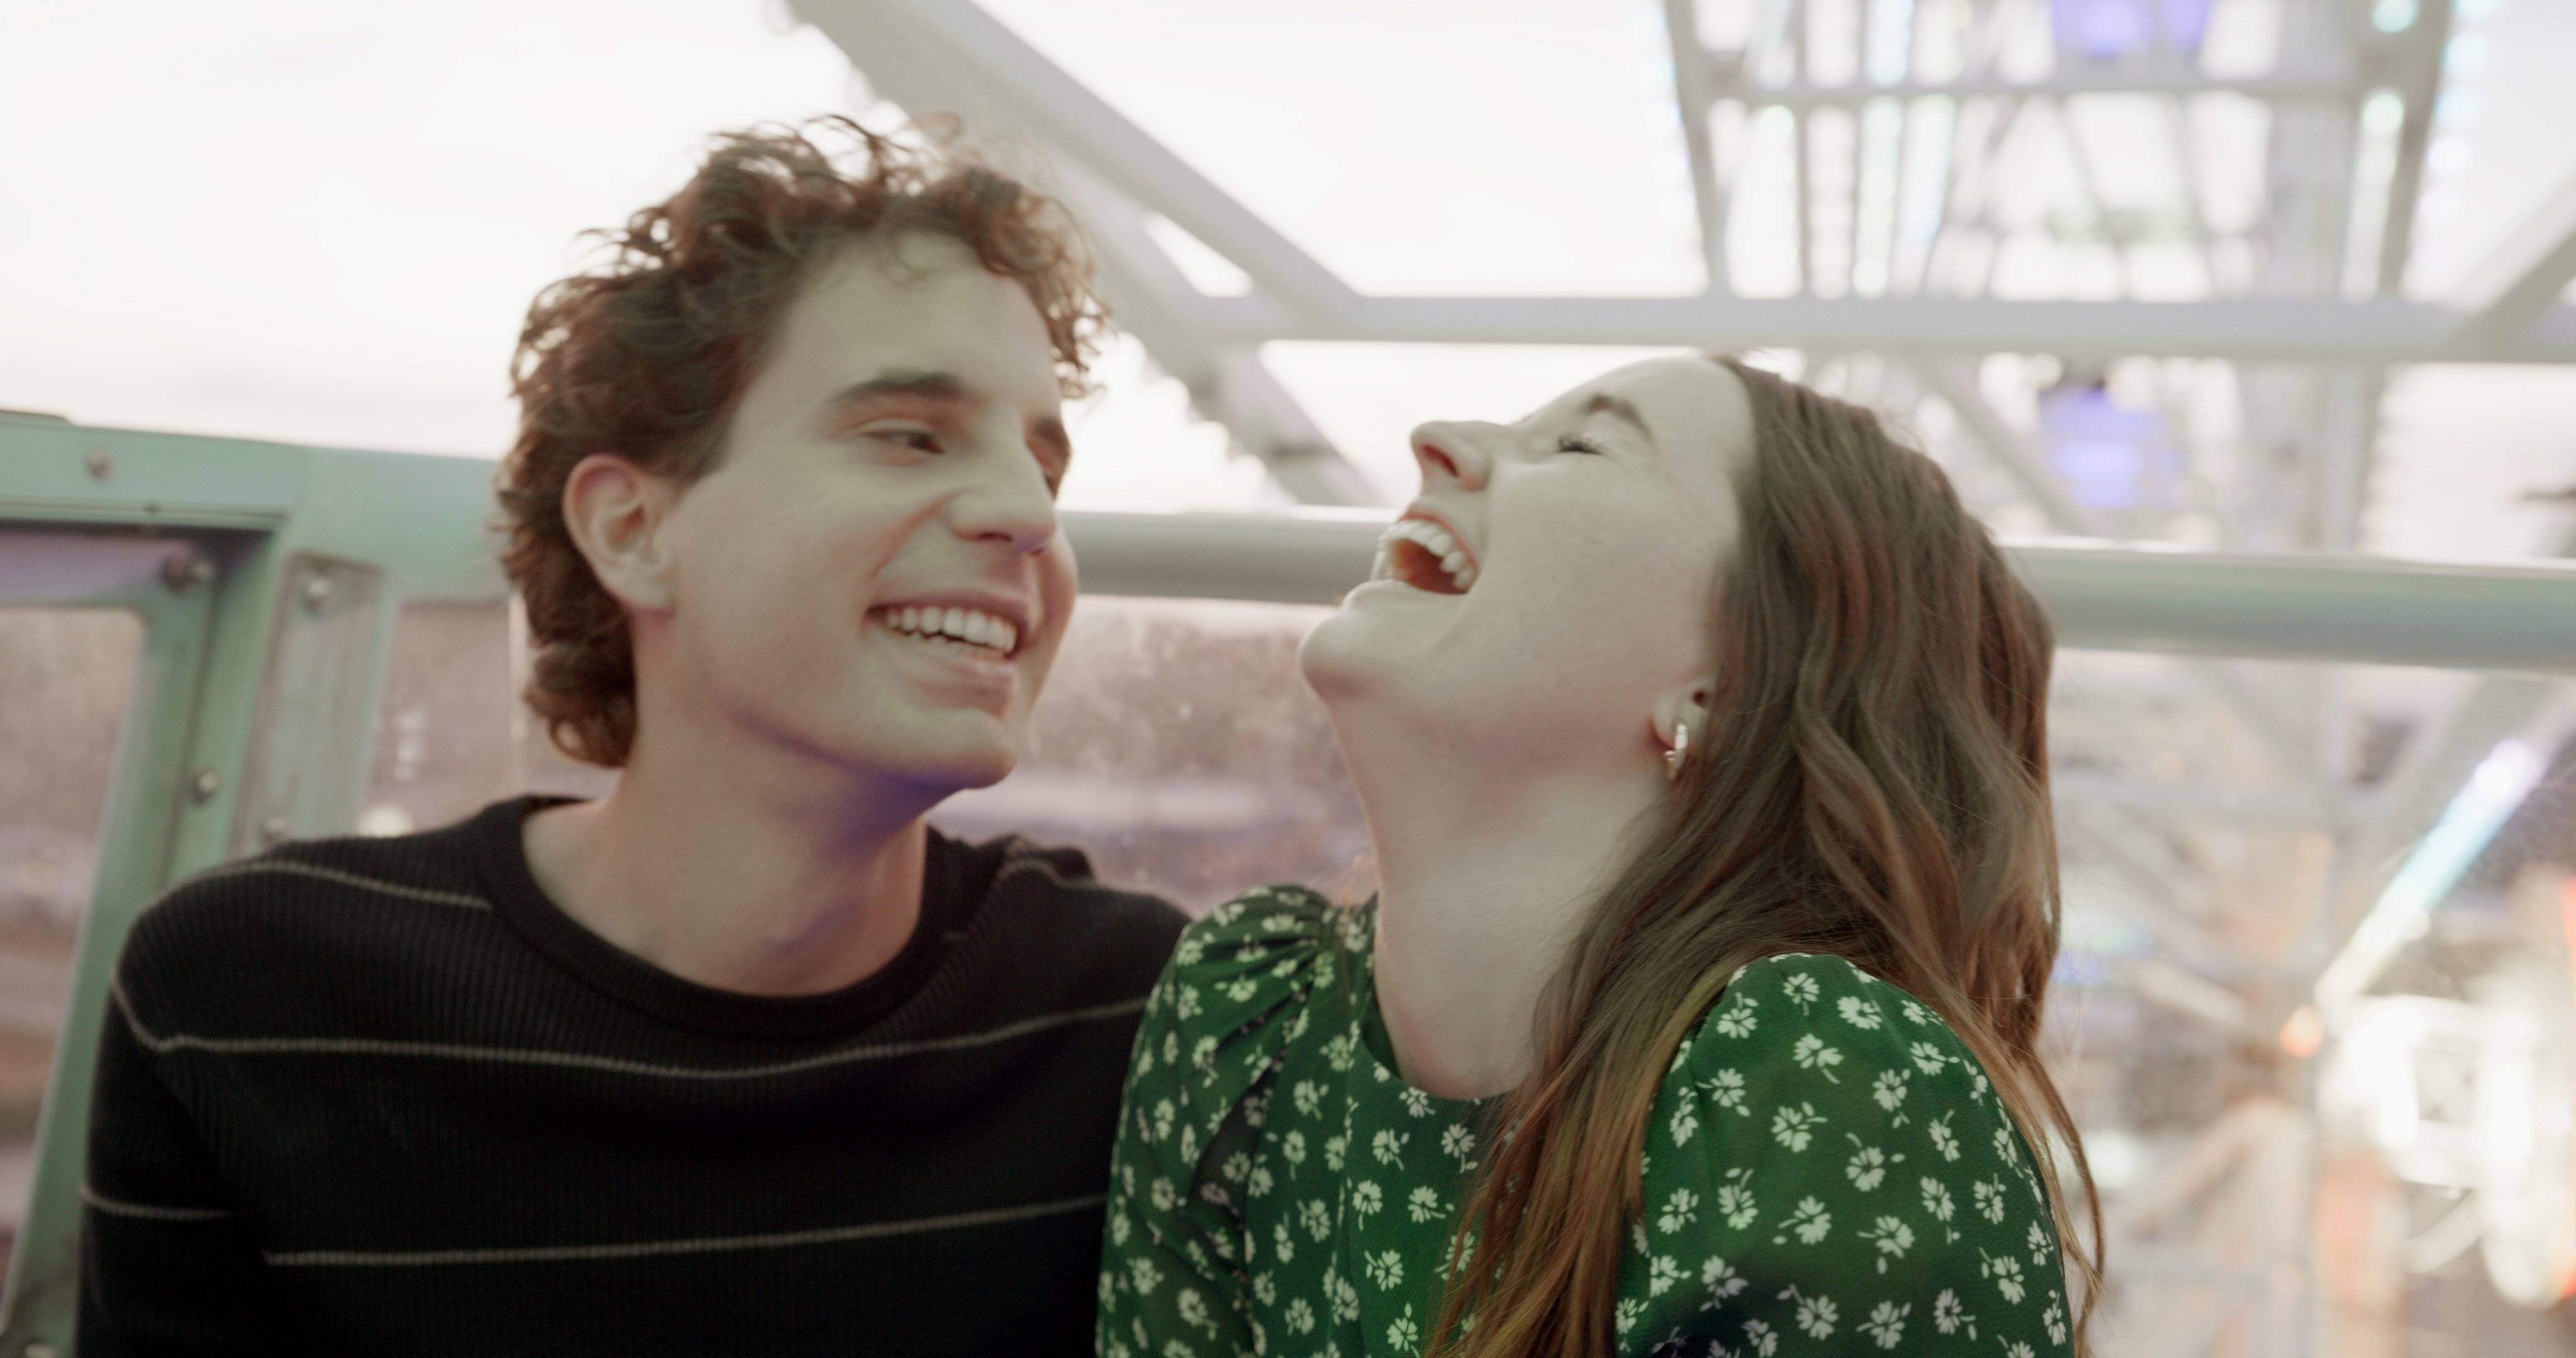 Ben Platt and Kaitlyn Dever sit together laughing, high up in a Ferris wheel carriage